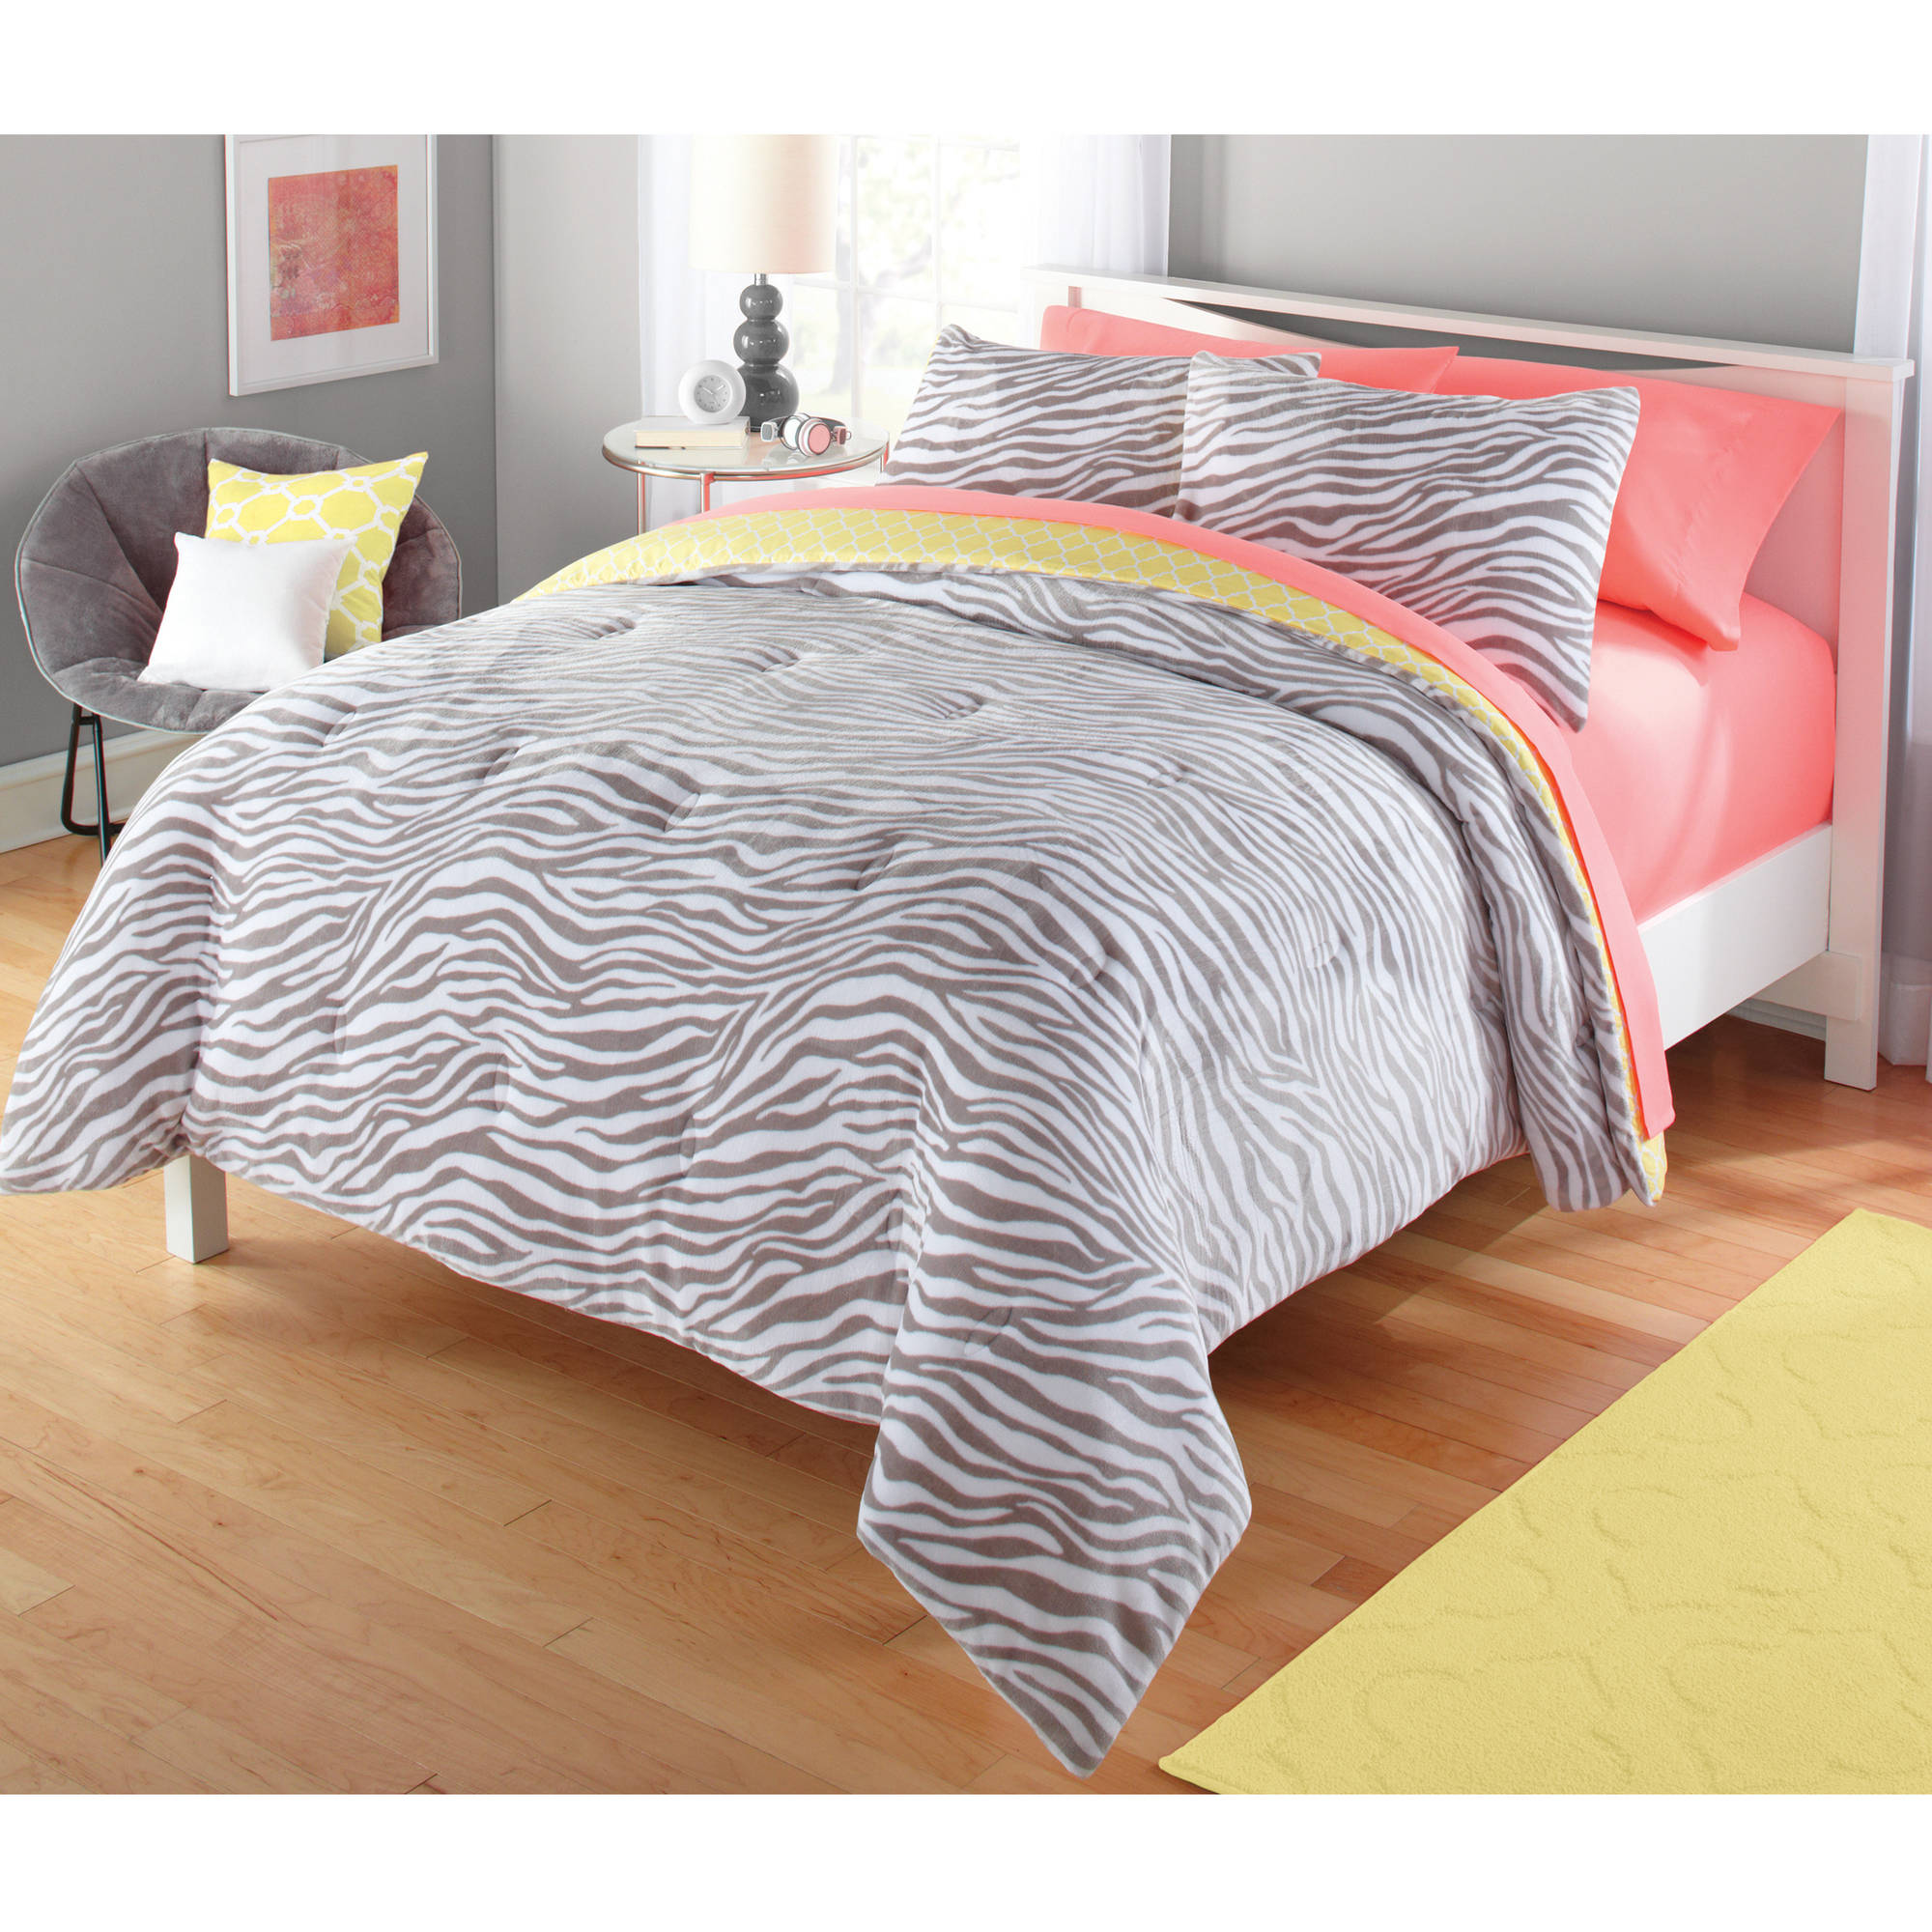 Your Zone Gray & Yellow Zebra Comforter Set, 1 Each